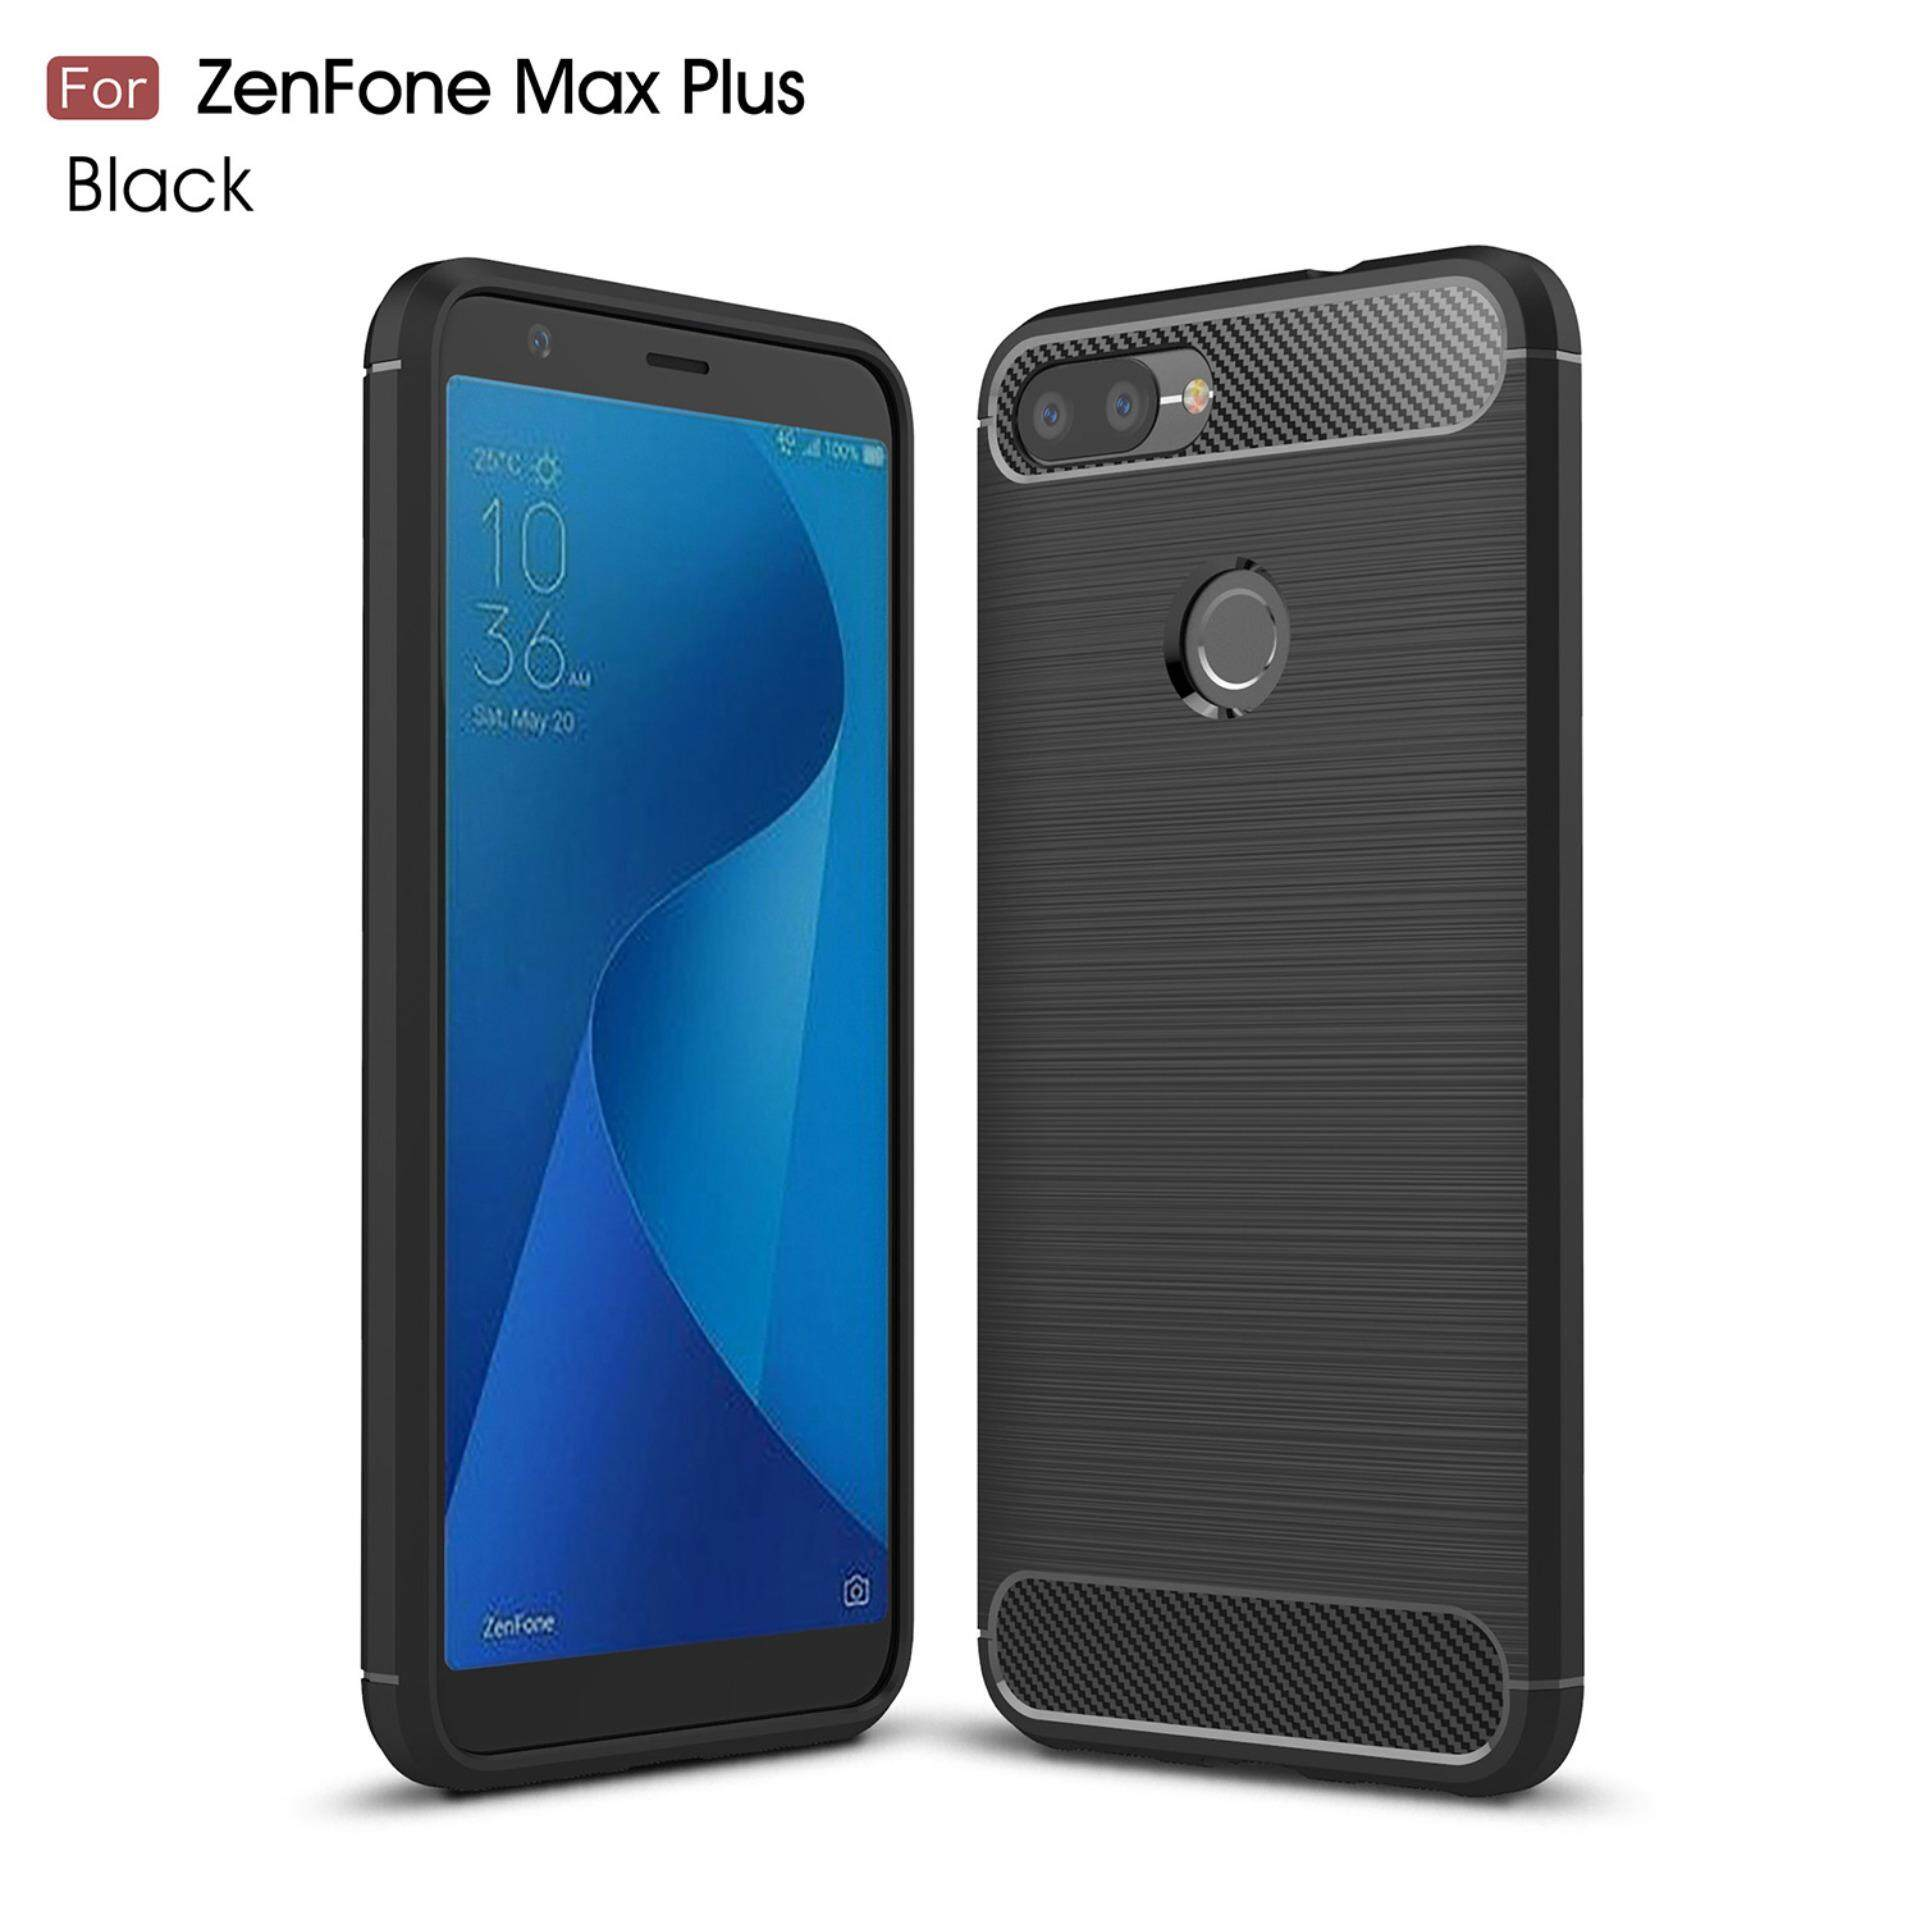 Kunpon For Asus Zenfone Max Plus Zb570Tl Case Rugged Armor With Resilient Shock Absorption And Carbon Fiber Tpu Non Slip Anti Scratch Ultra Slim Cover Case For Asus Zenfone Max Plus Zb570Tl Matte Black Intl เป็นต้นฉบับ